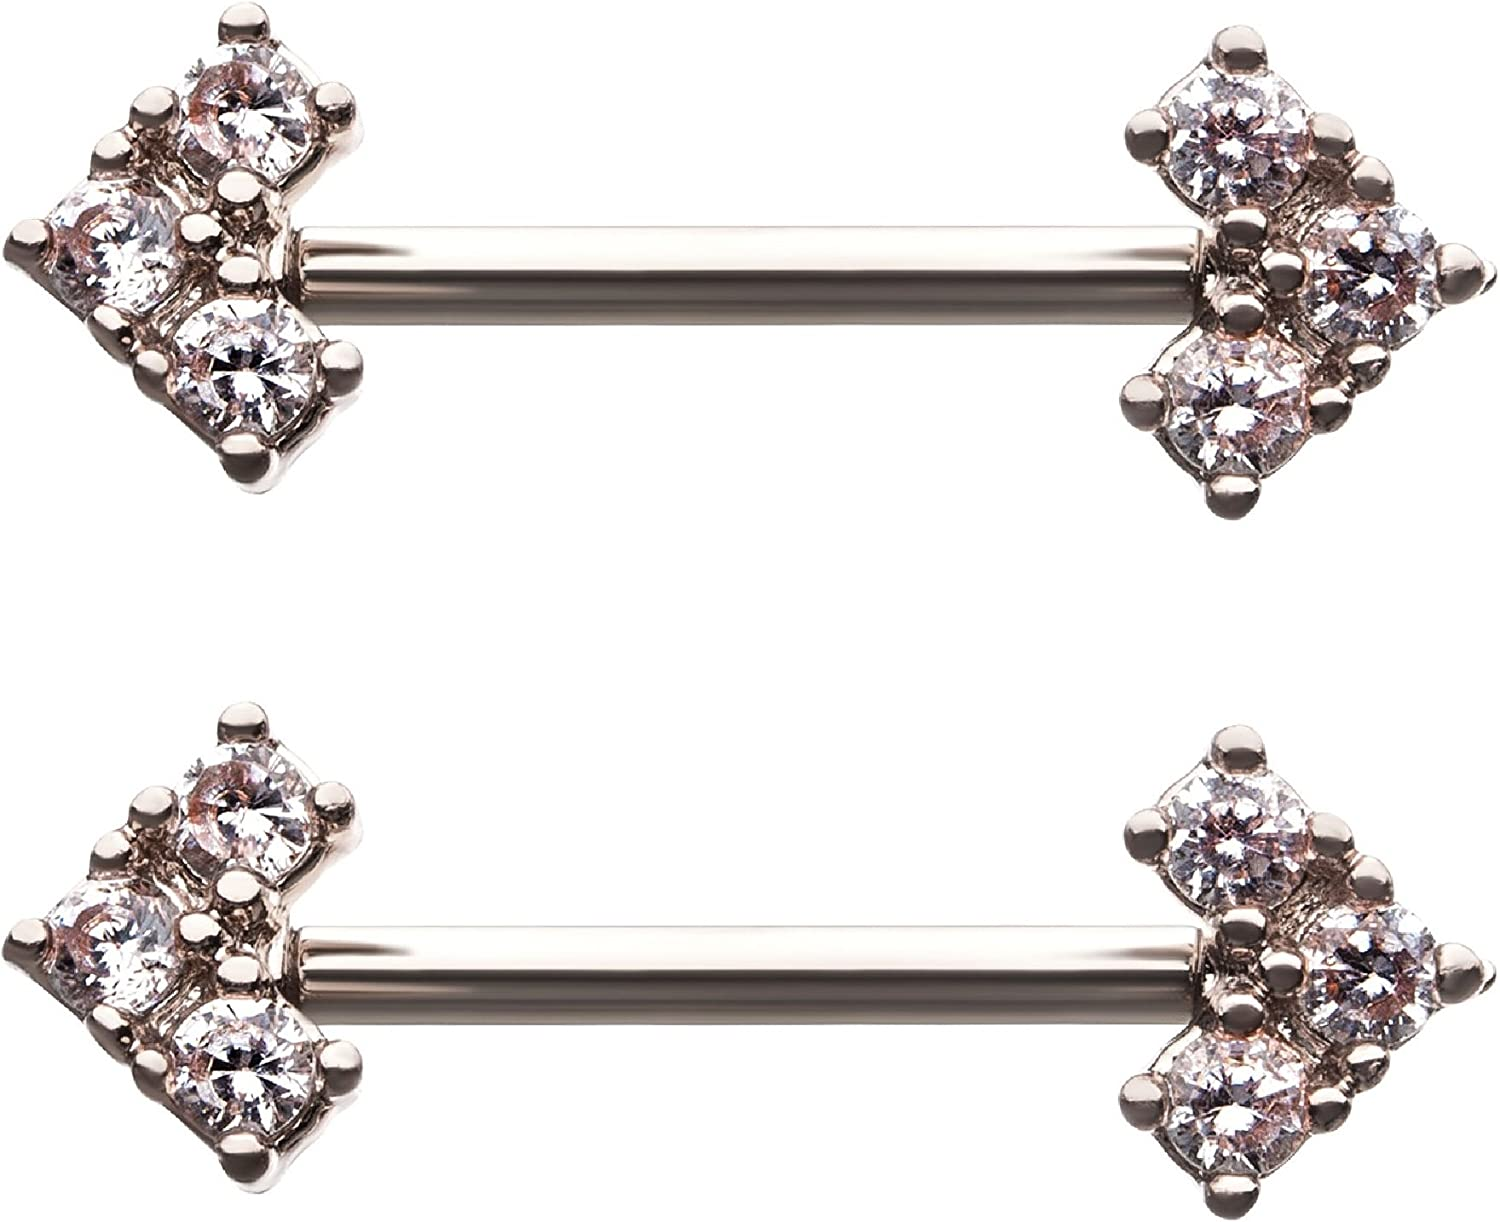 Sold as a Pair Pierced Owl CZ Crystal Flower Nipple Barbells